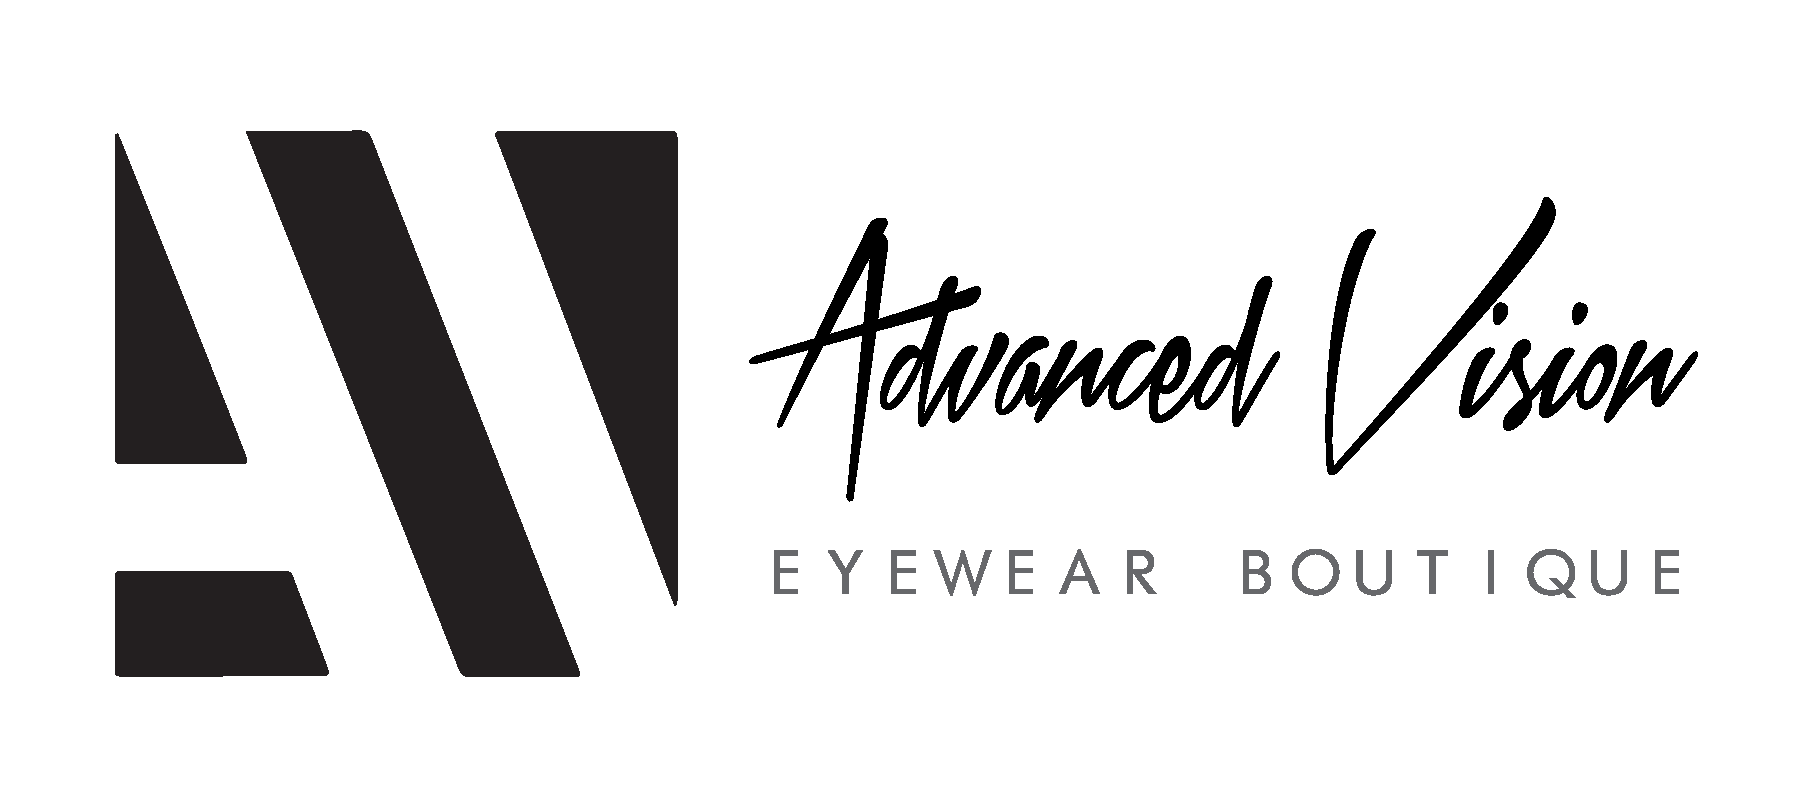 Advanced Vision Eyewear Boutique